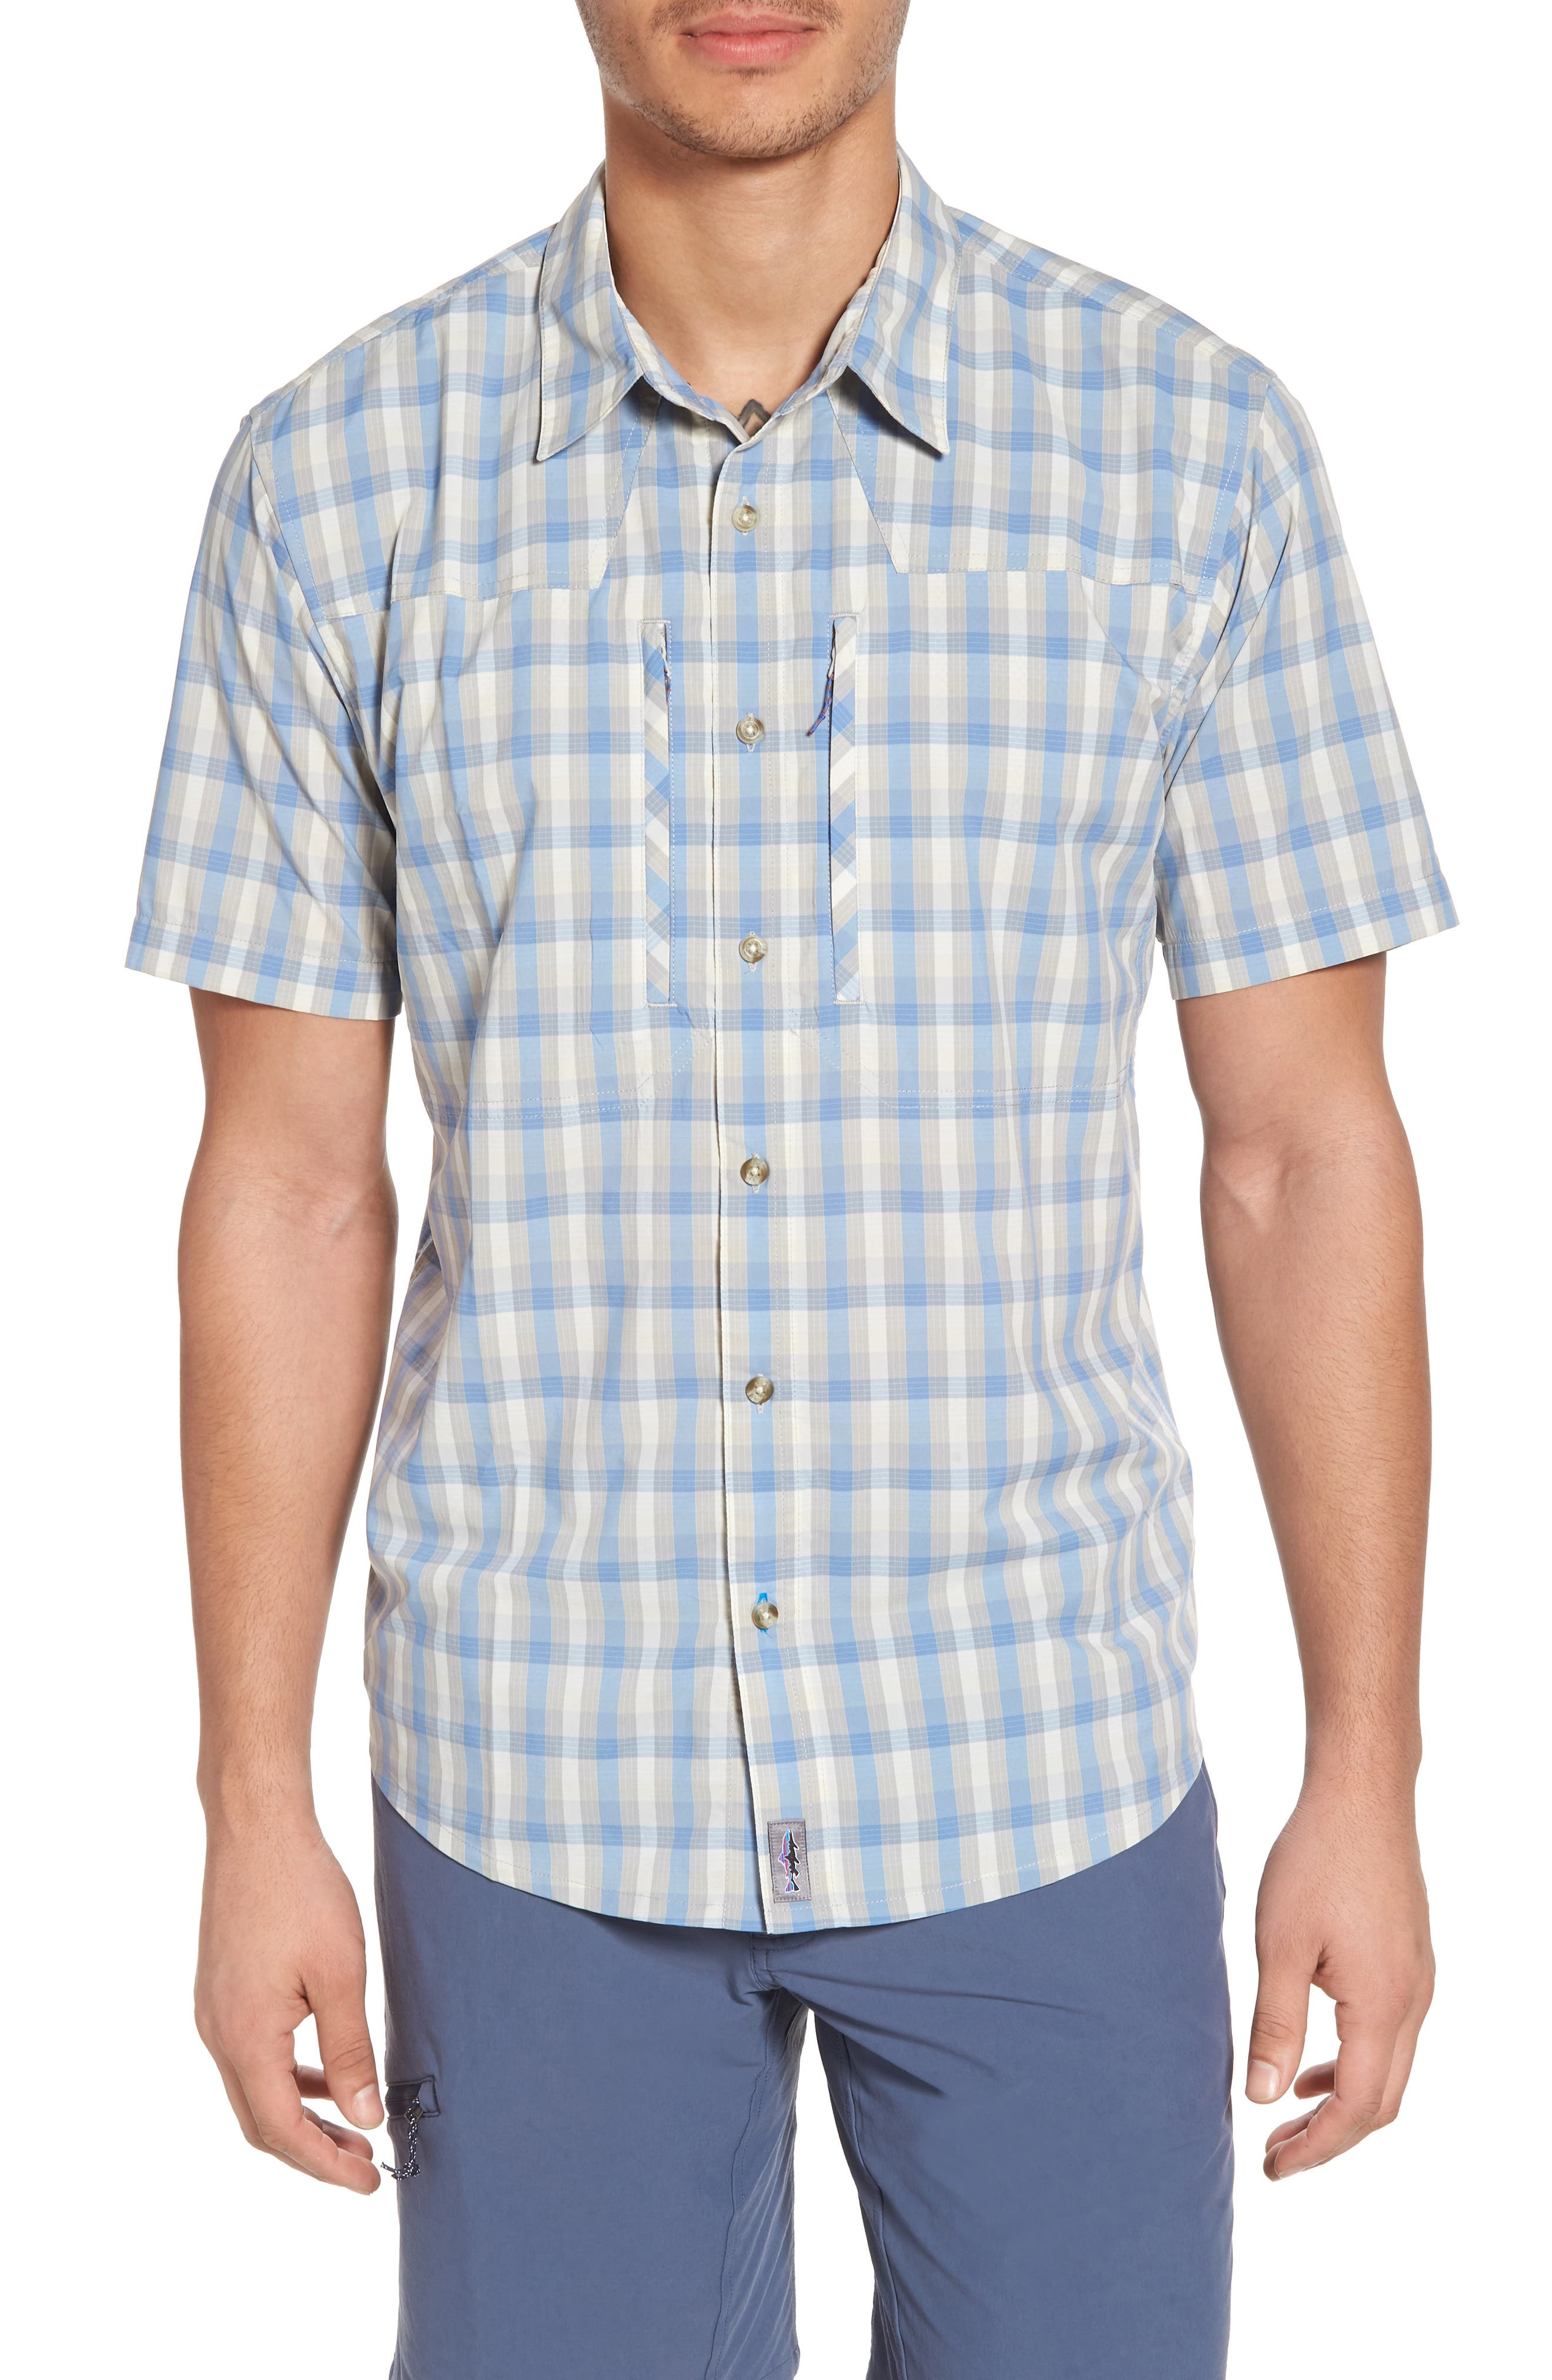 M's Sun Plaid Stretch Hybrid Shirt,                         Main,                         color, Mauro Railroad Blue